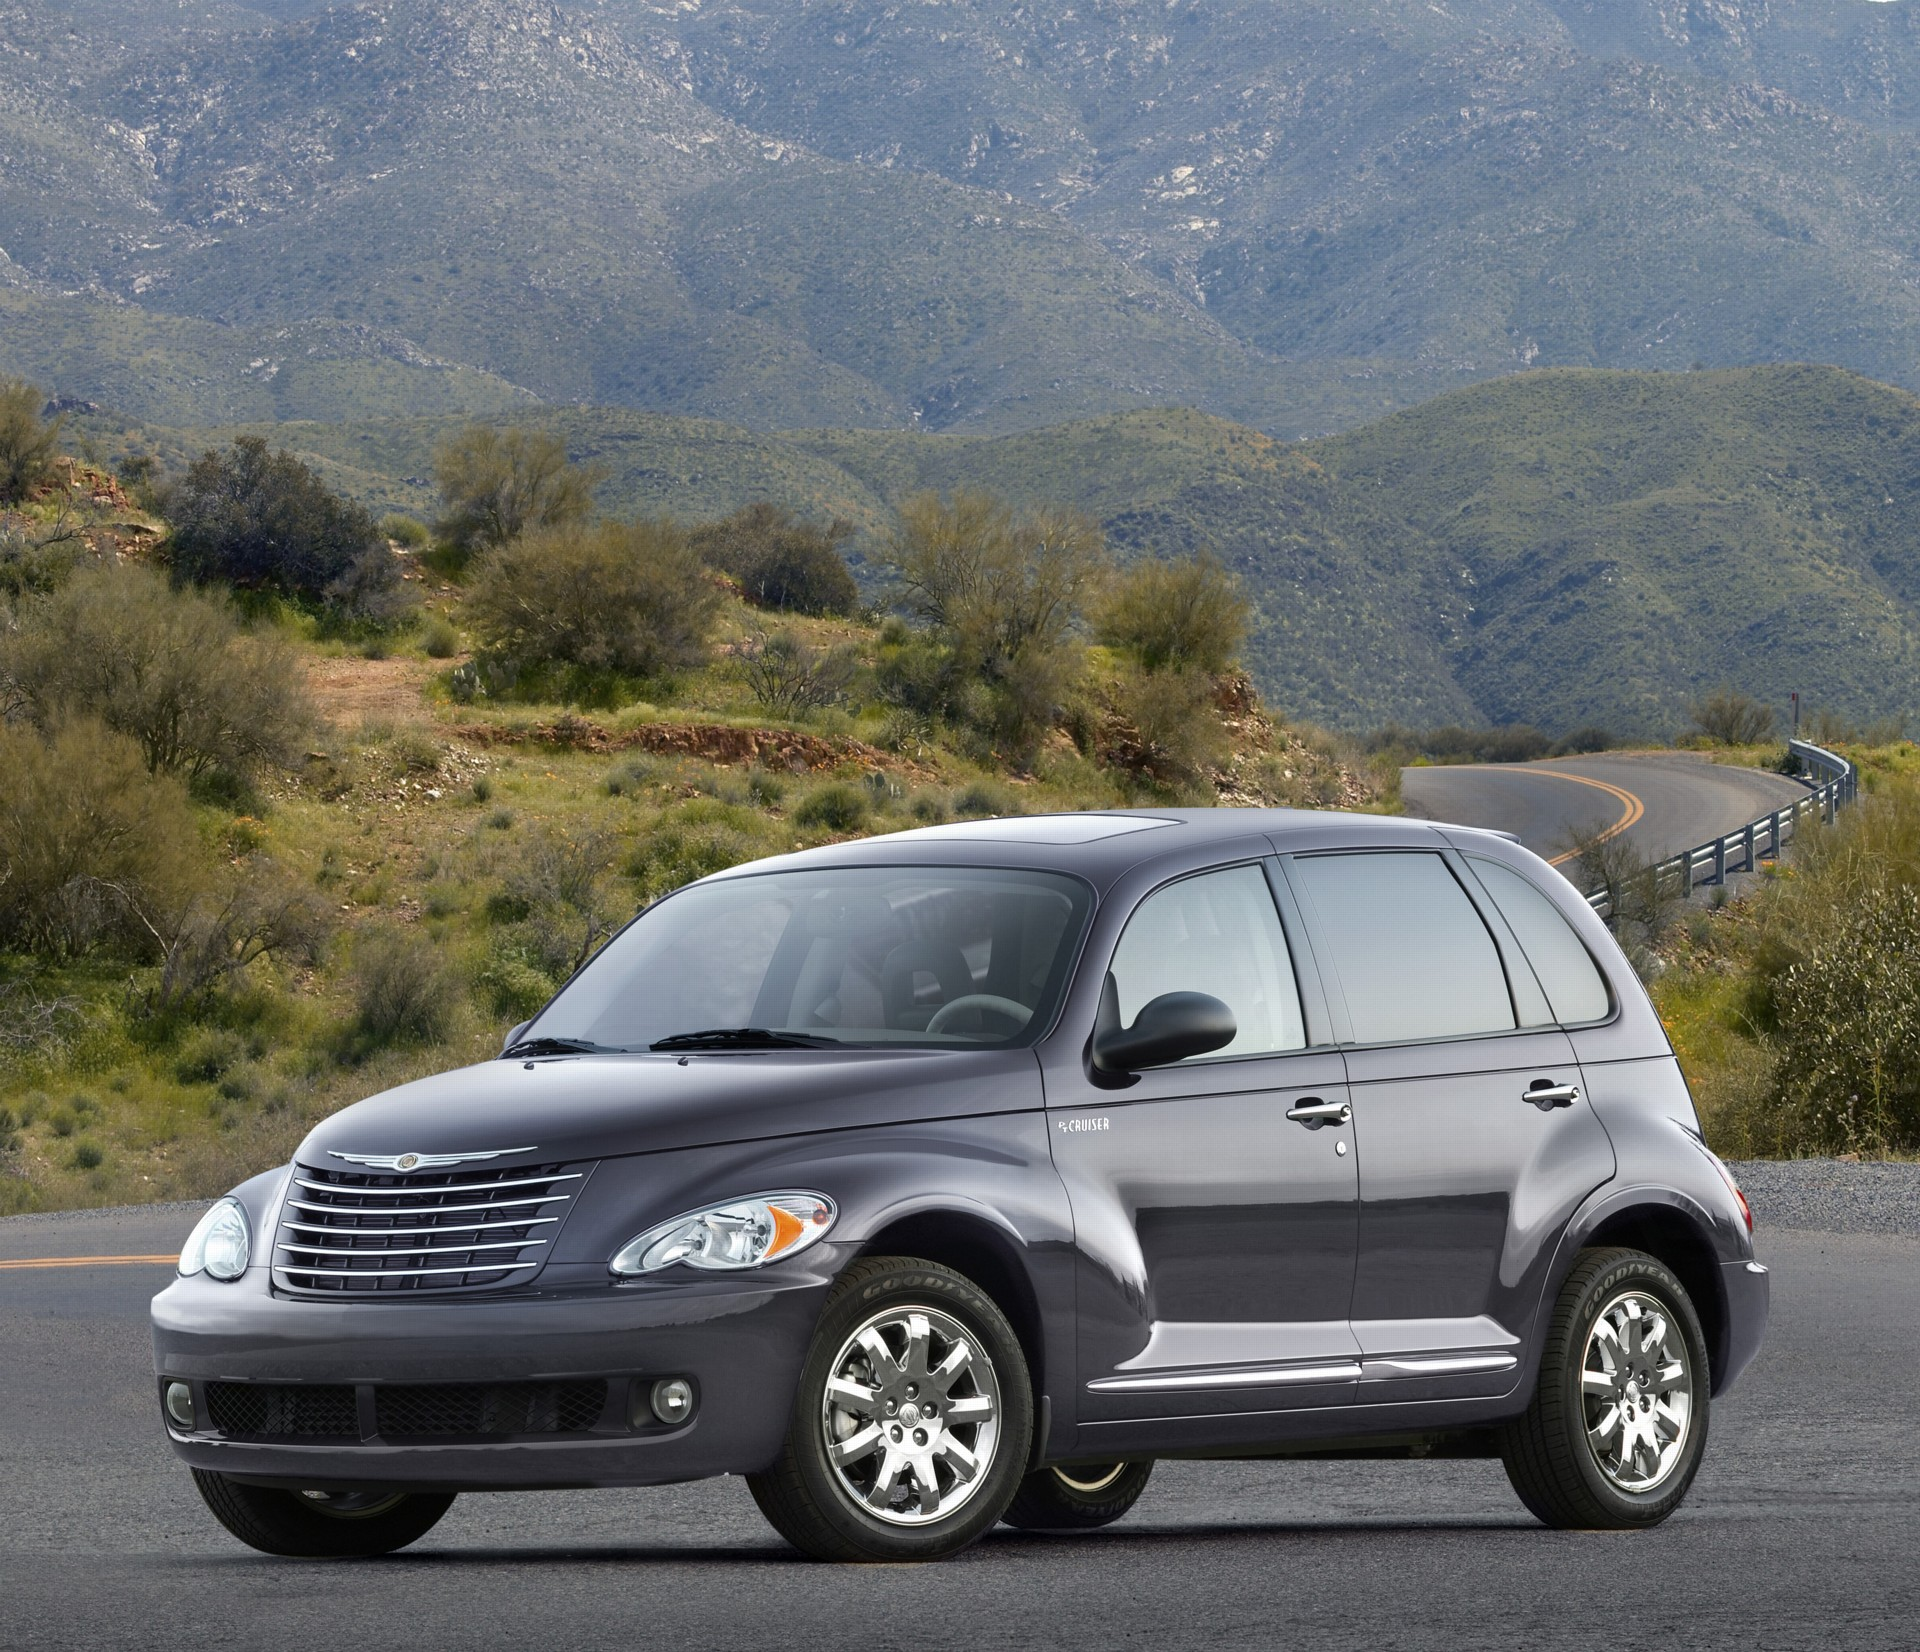 2007 chrysler pt cruiser pictures history value. Black Bedroom Furniture Sets. Home Design Ideas